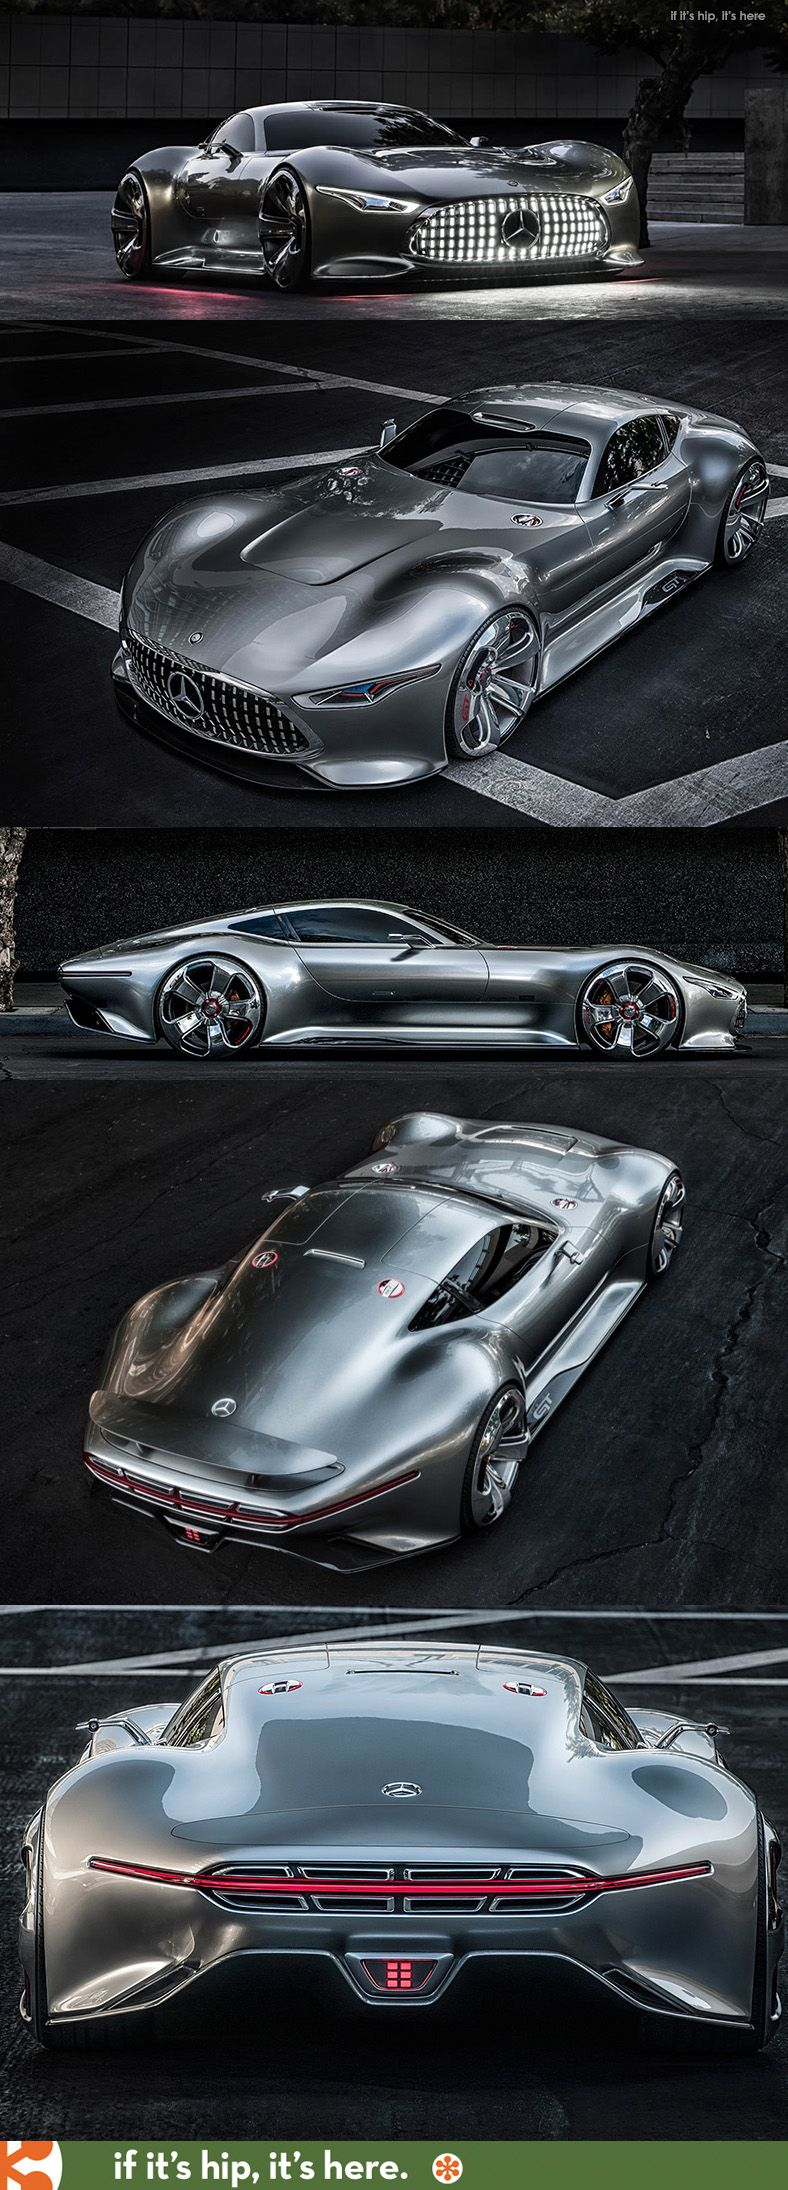 Mercedes-Benz Designs A Wicked Car Inspired by the racing game: Gran Turismo. But somehow, it looks like a Jaguar to me. Thoughts? (J Train)